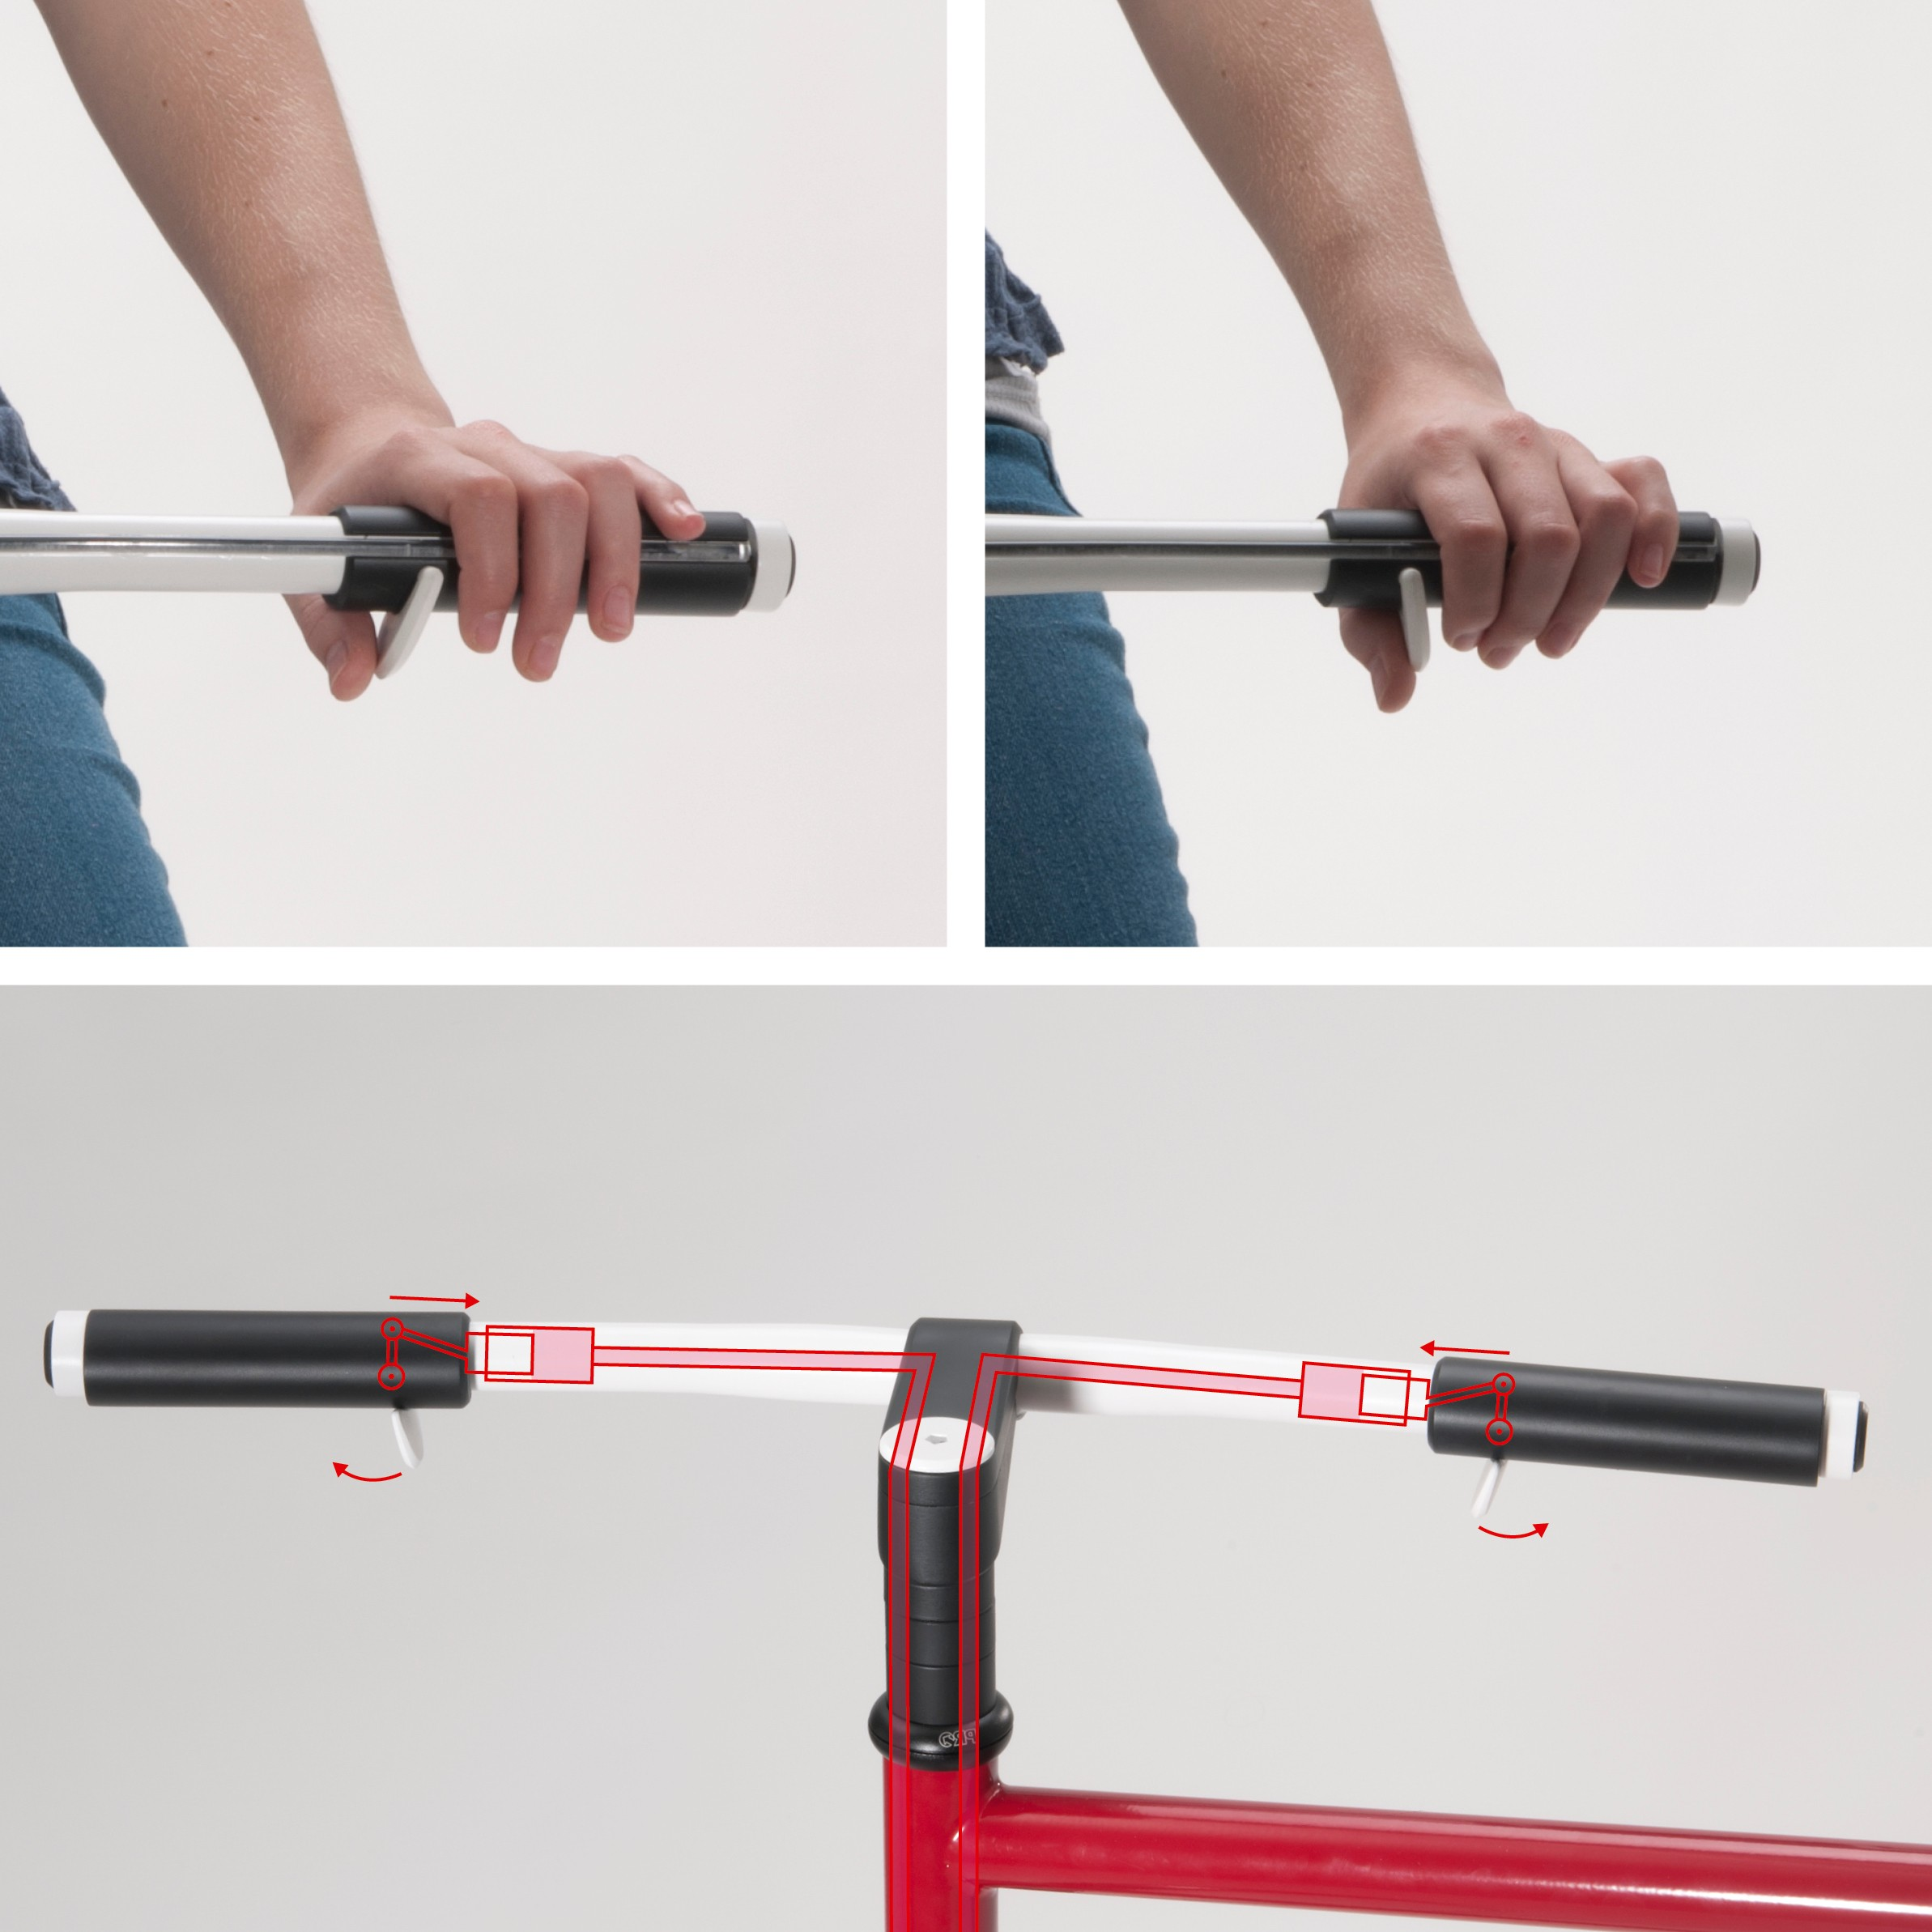 Penta's thumb-operated brakes could be used on folding bikes